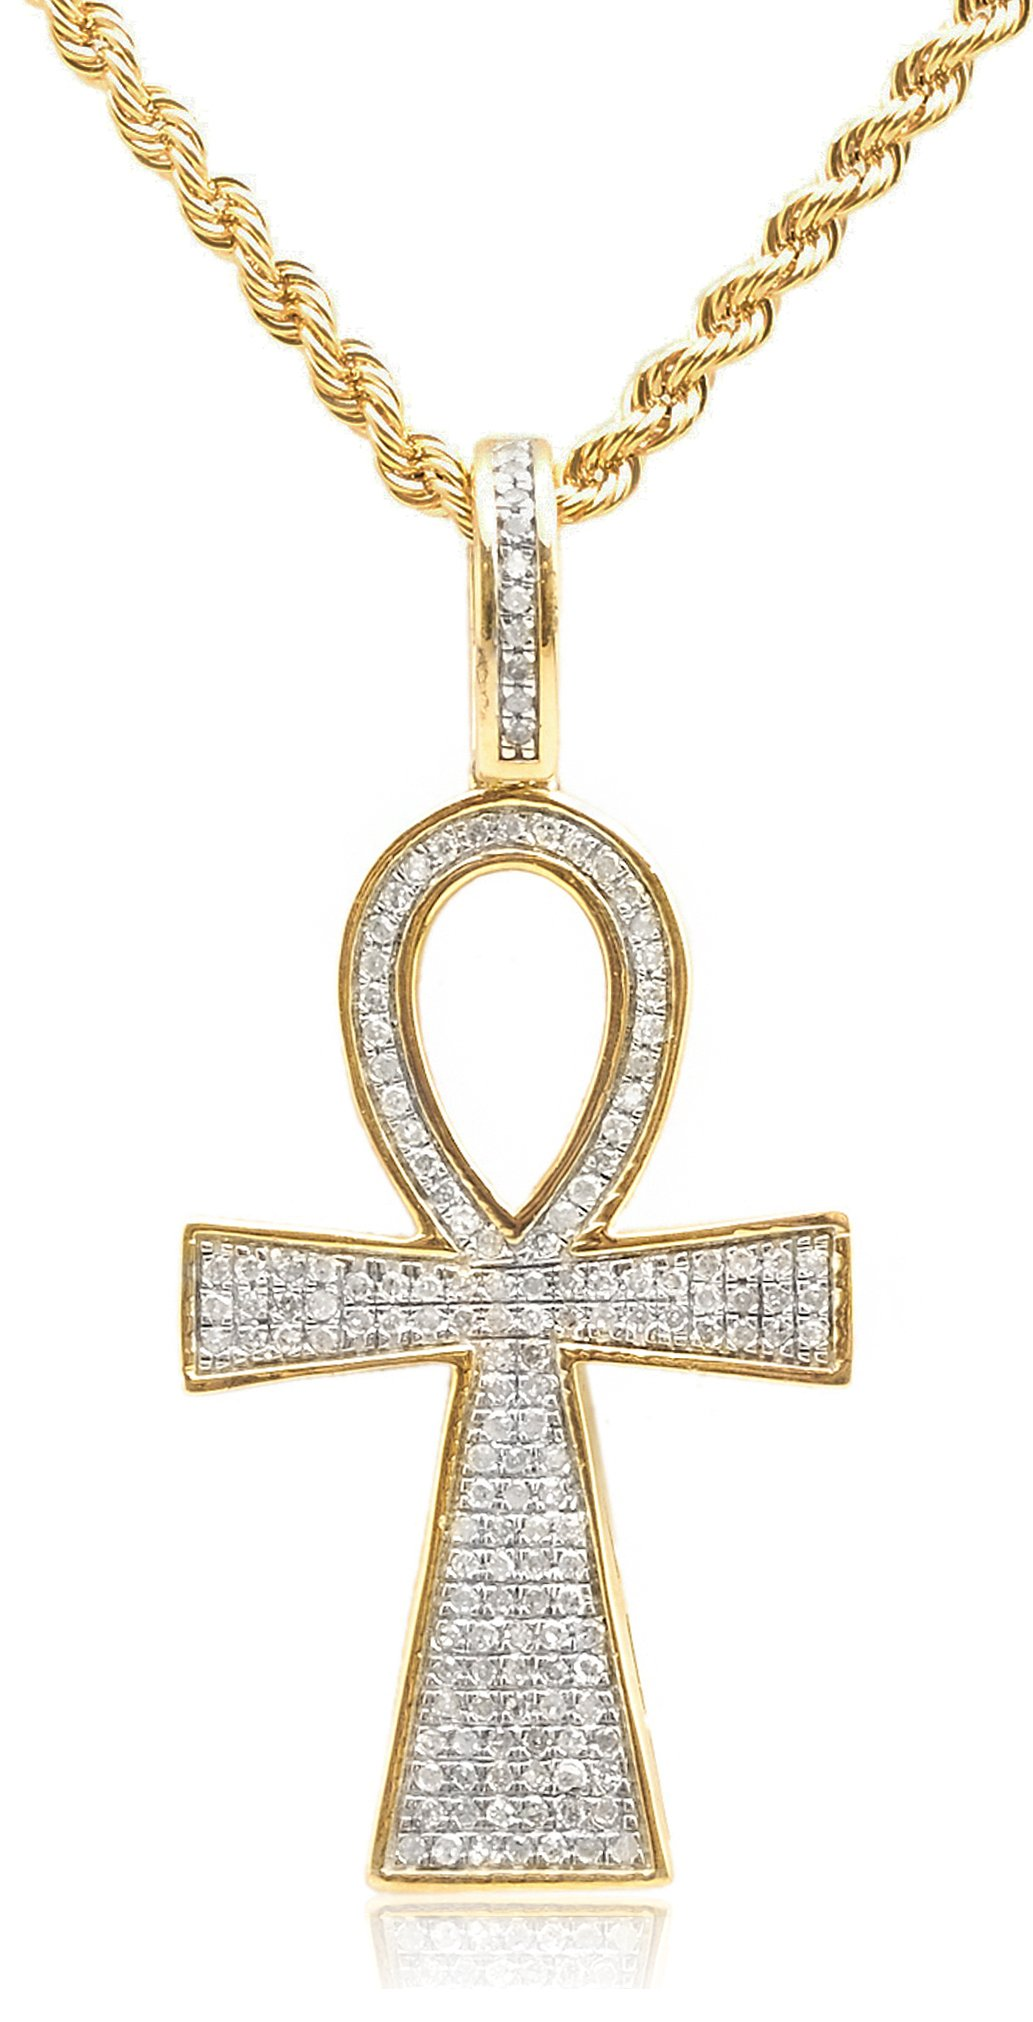 10K Yellow Gold .40 Cttw Diamond Ankh Cross Pendant & 10K 2mm 24 Inch Rope Necklace